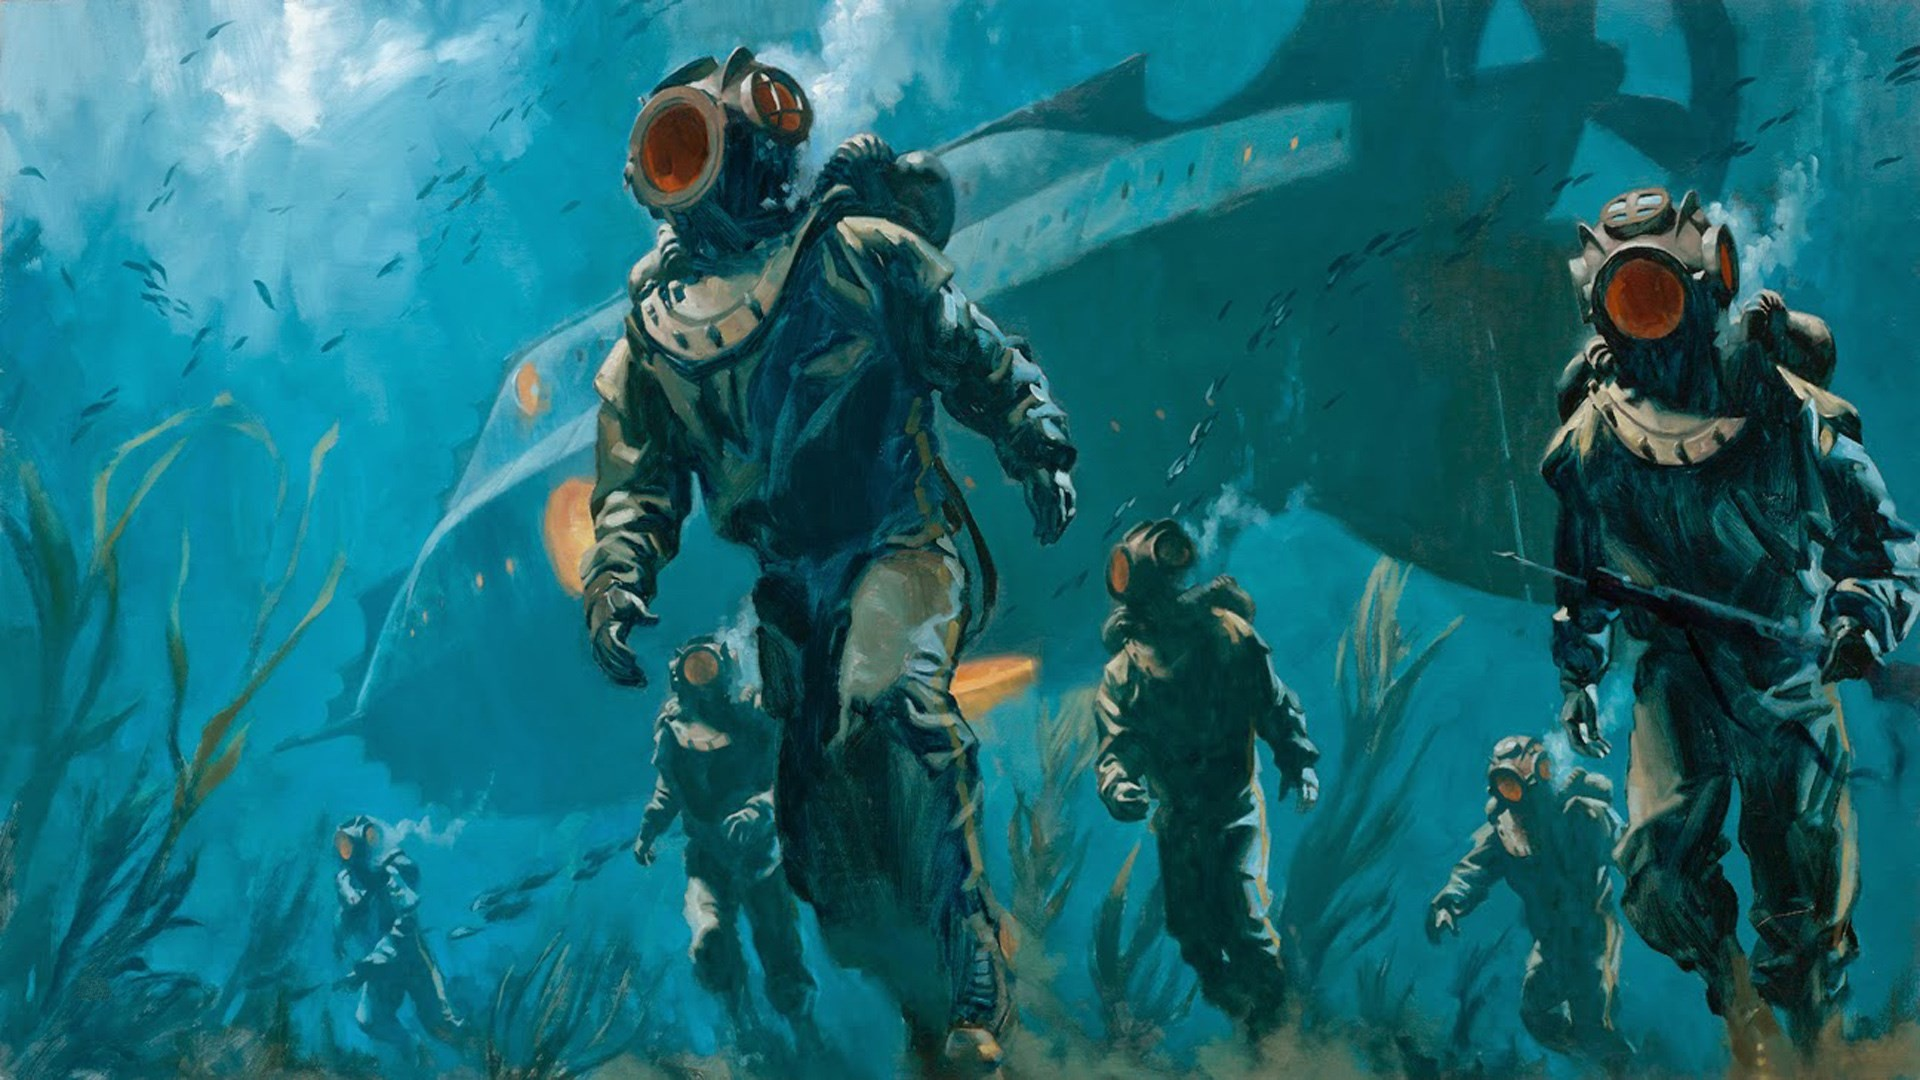 1920x1080 #1979902, High Resolution Wallpapers 20000 leagues under the sea image